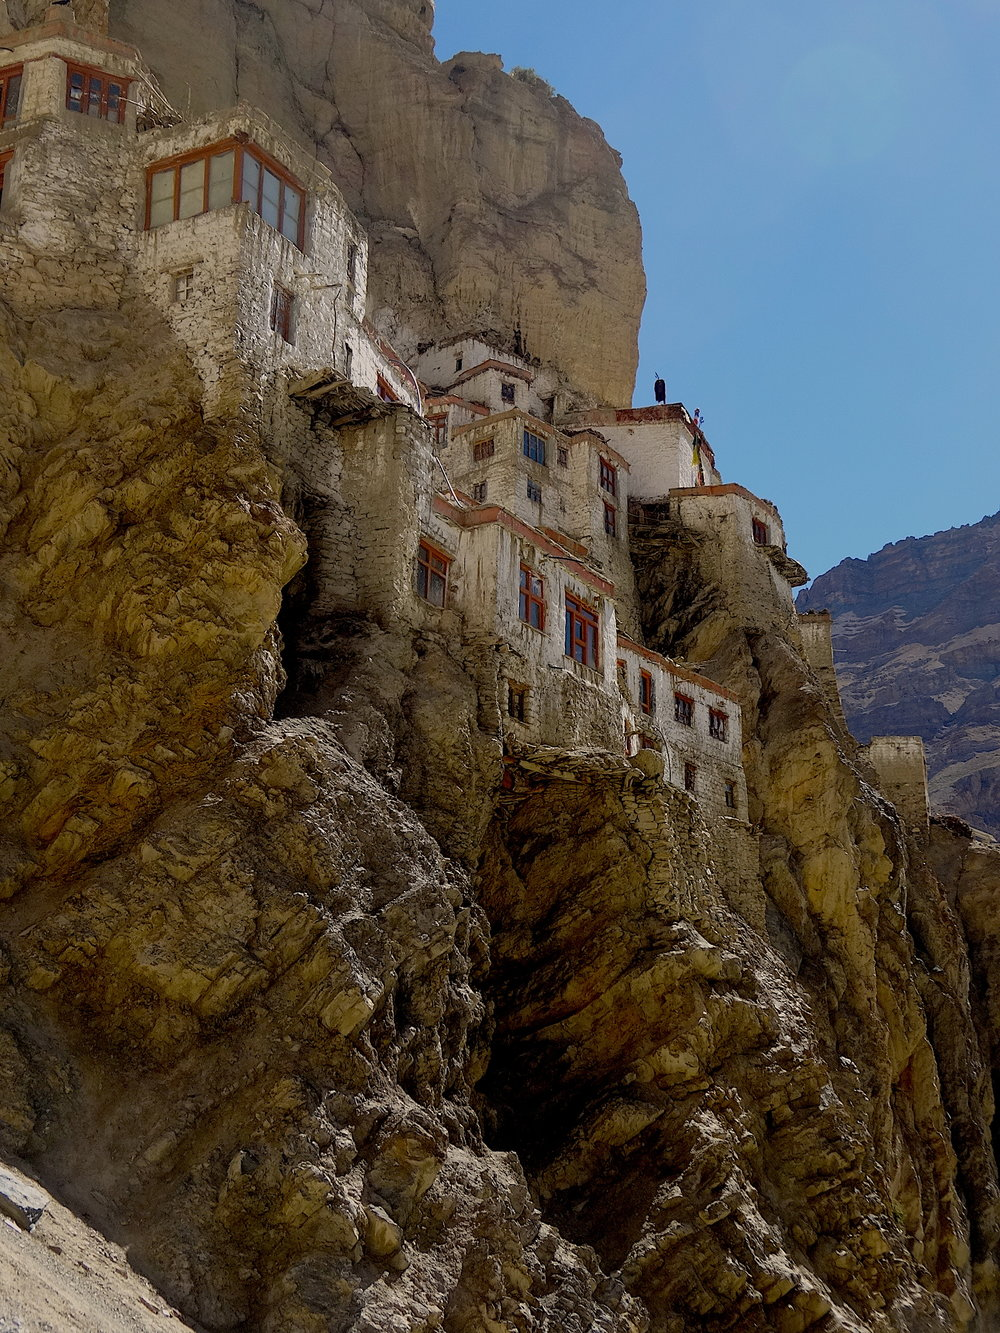 Phugtal Gompa perched eerie-like on a cliff